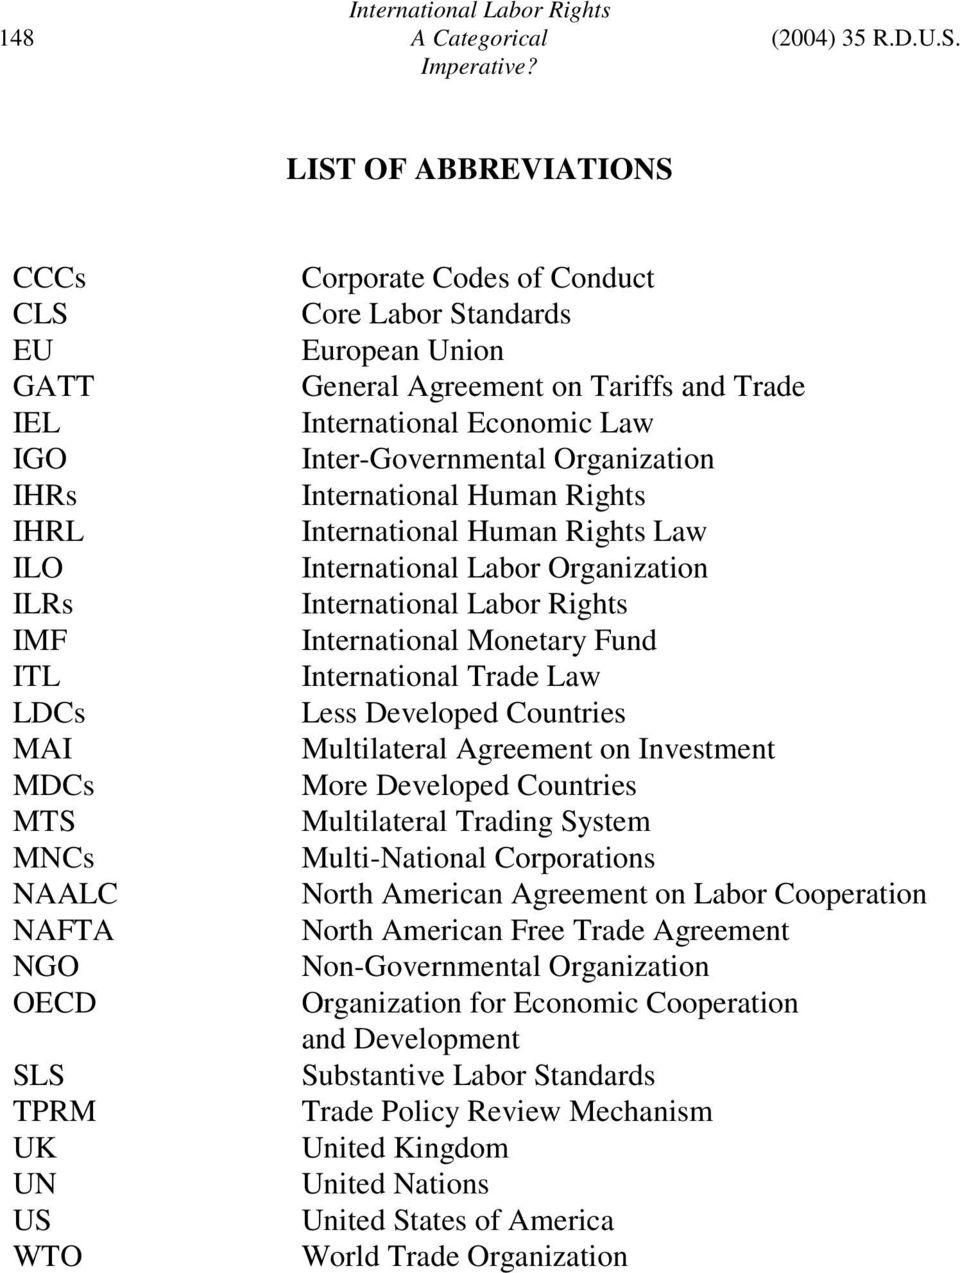 Union General Agreement on Tariffs and Trade International Economic Law Inter-Governmental Organization International Human Rights International Human Rights Law International Labor Organization